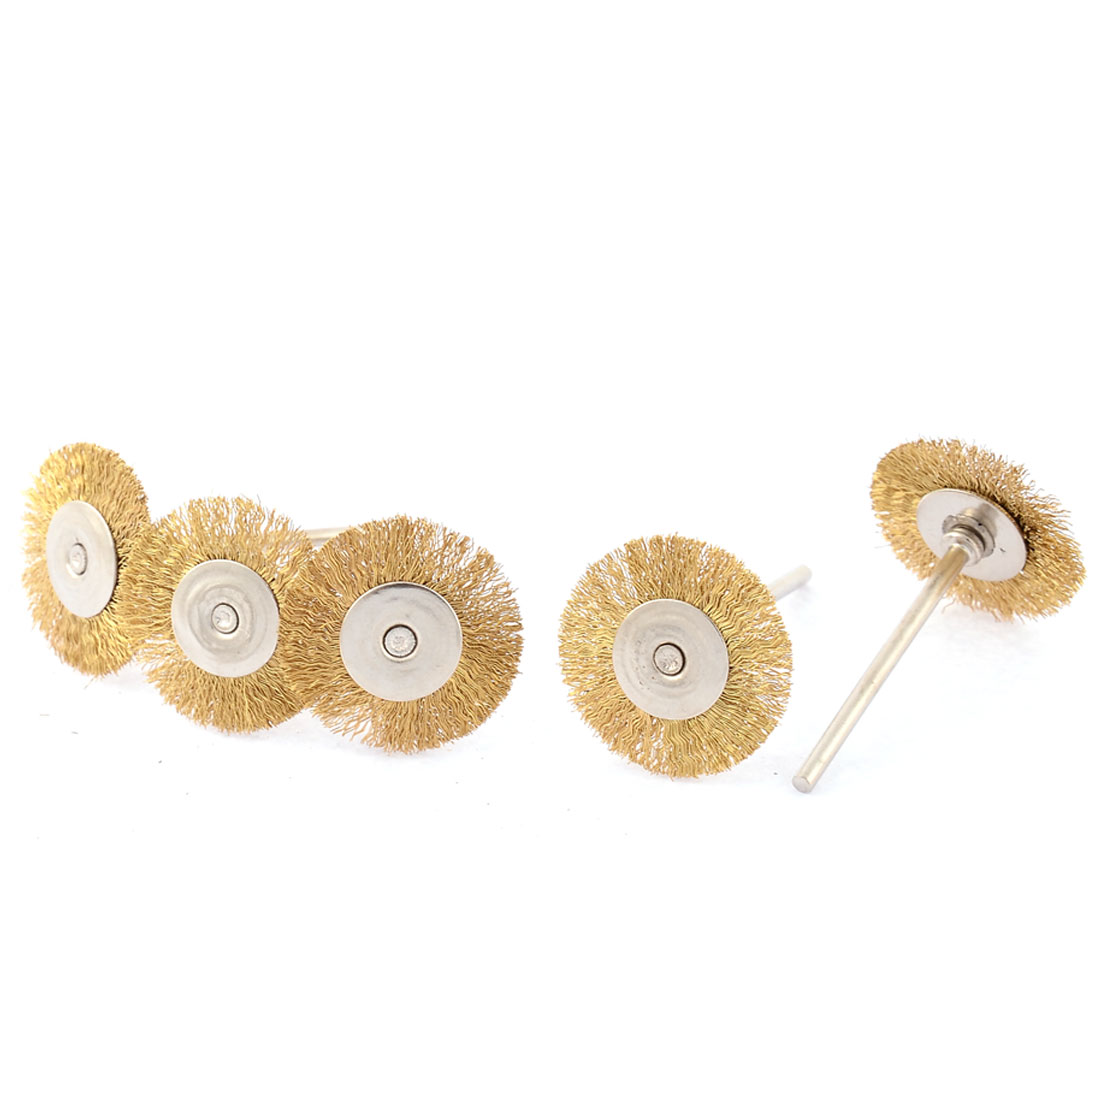 5 Pcs 2.3mm Shank 25mm Dia Copper Wire Electric Drill Polish Buffing Wheel